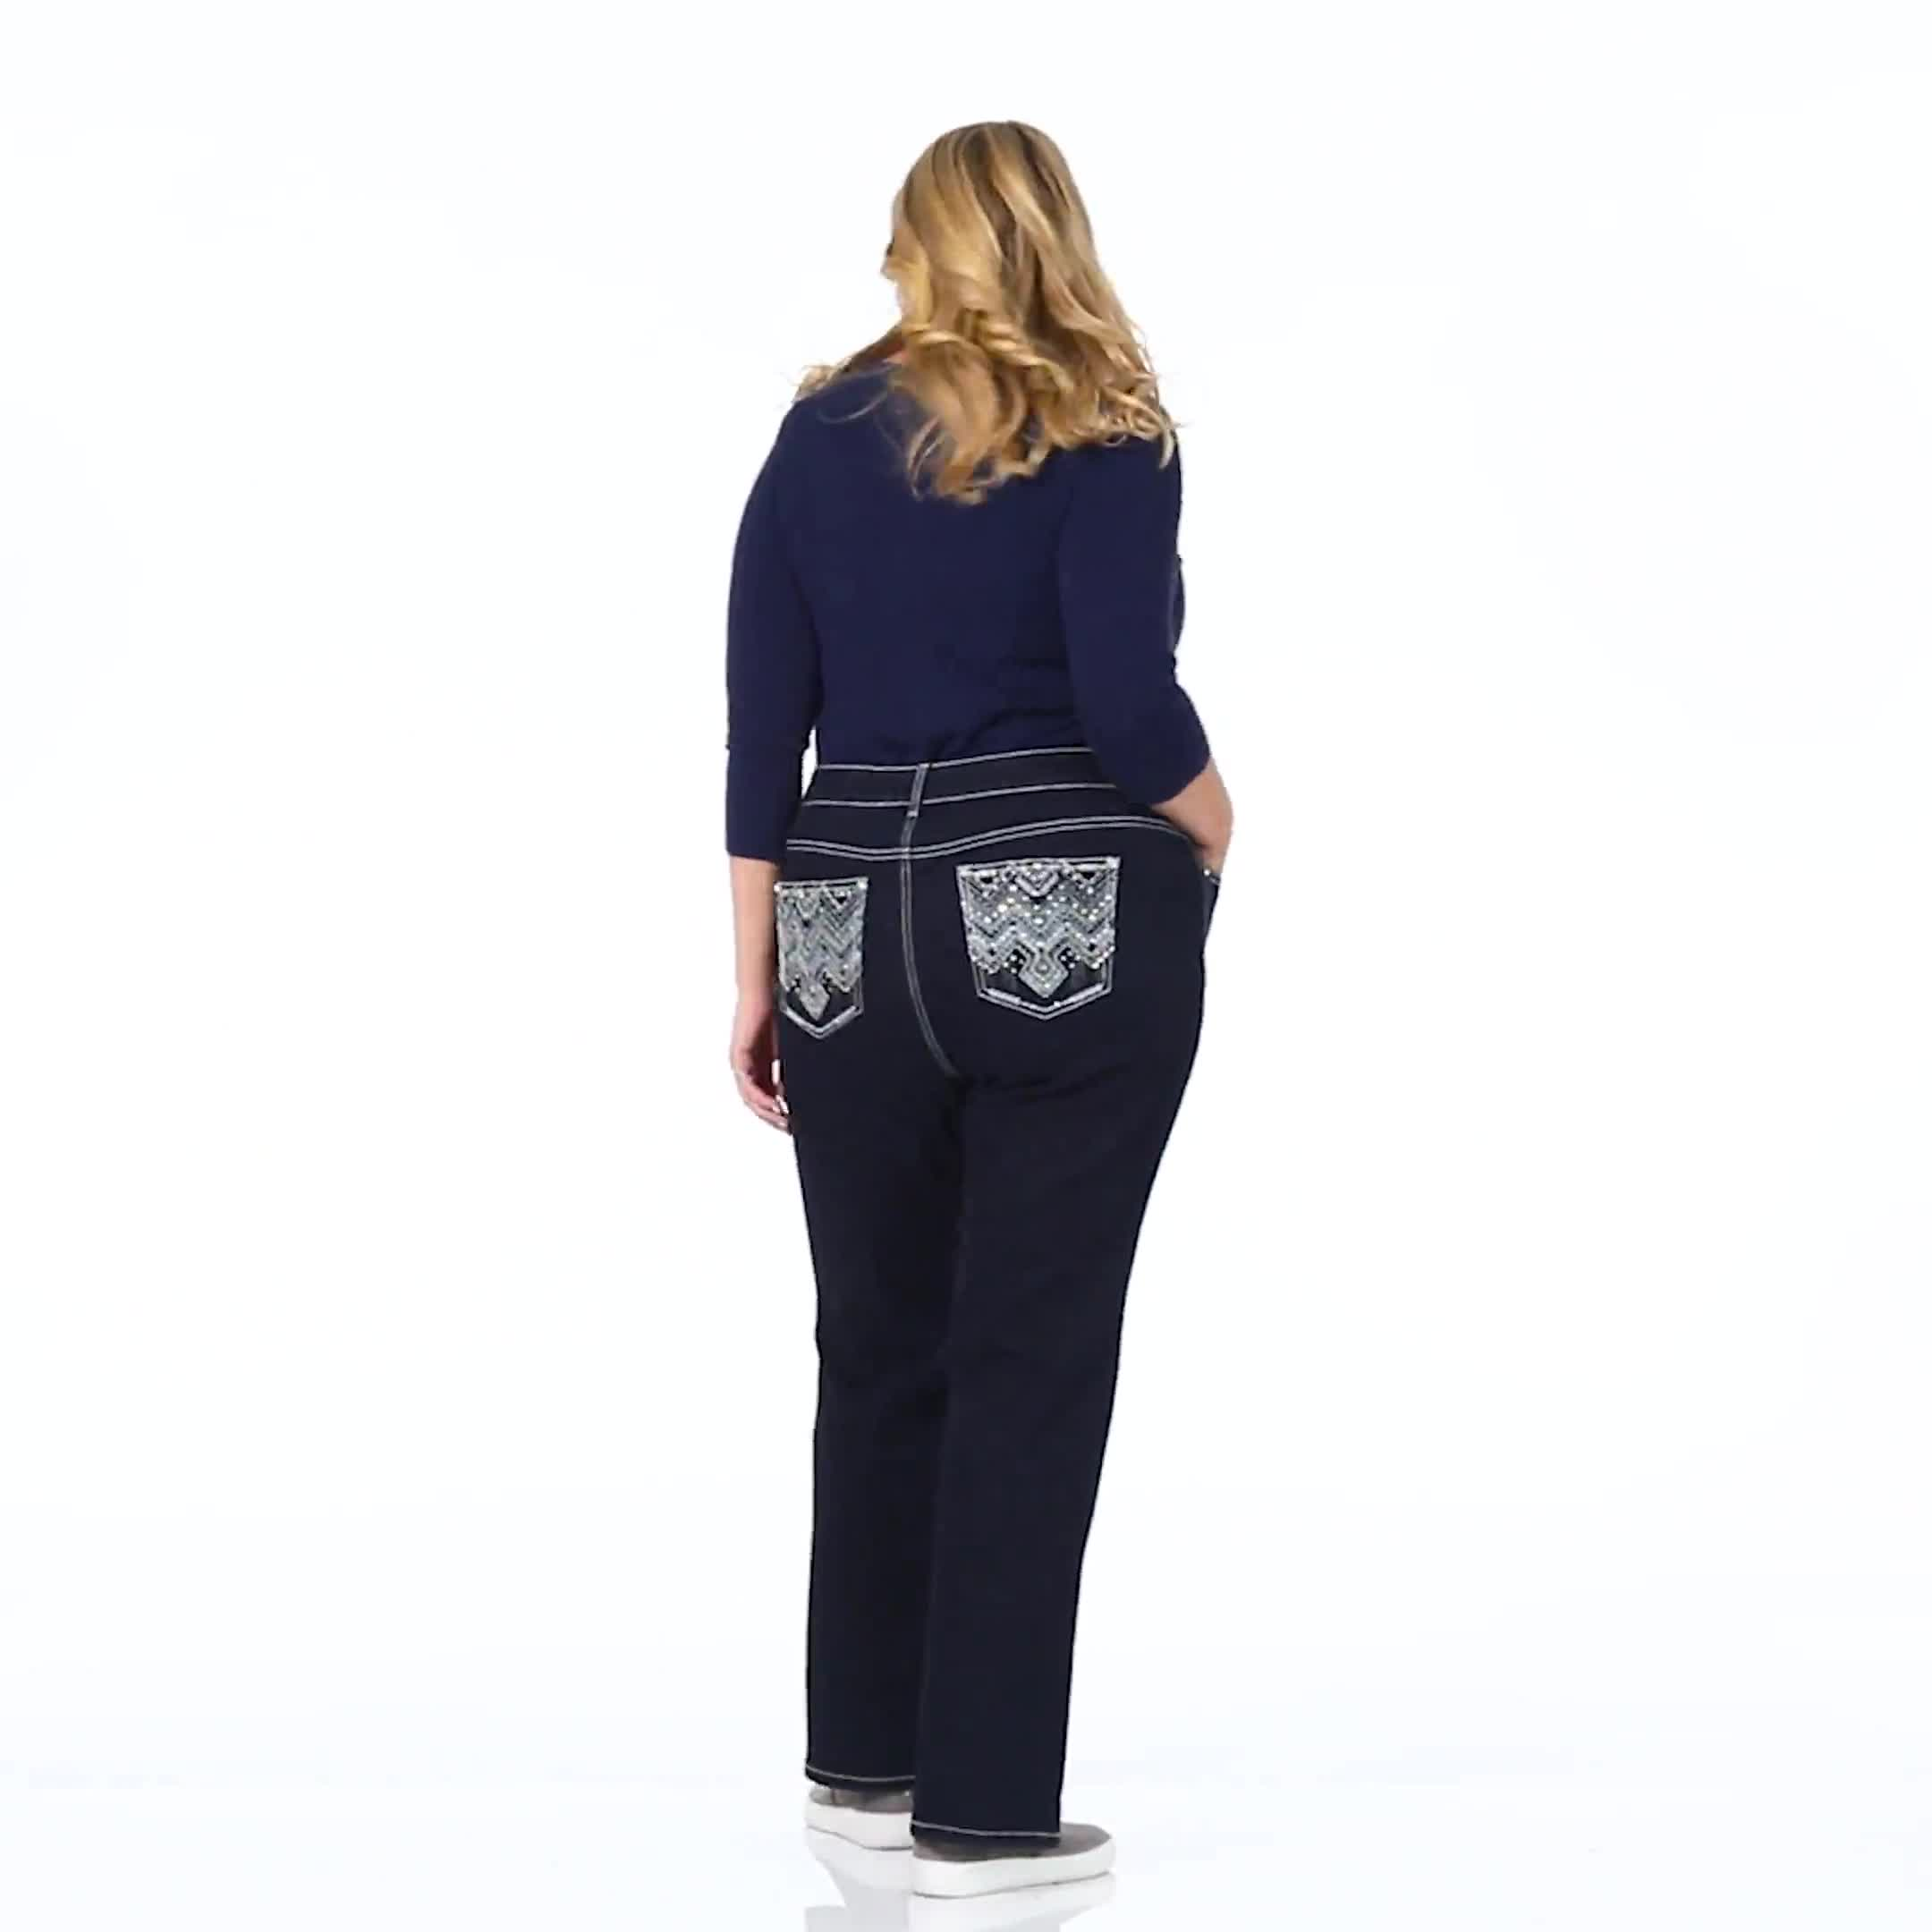 Plus Westport Signature Bootcut 5 Pocket Jean with Chevron Pattern Bling Back Pocket - Plus - Video